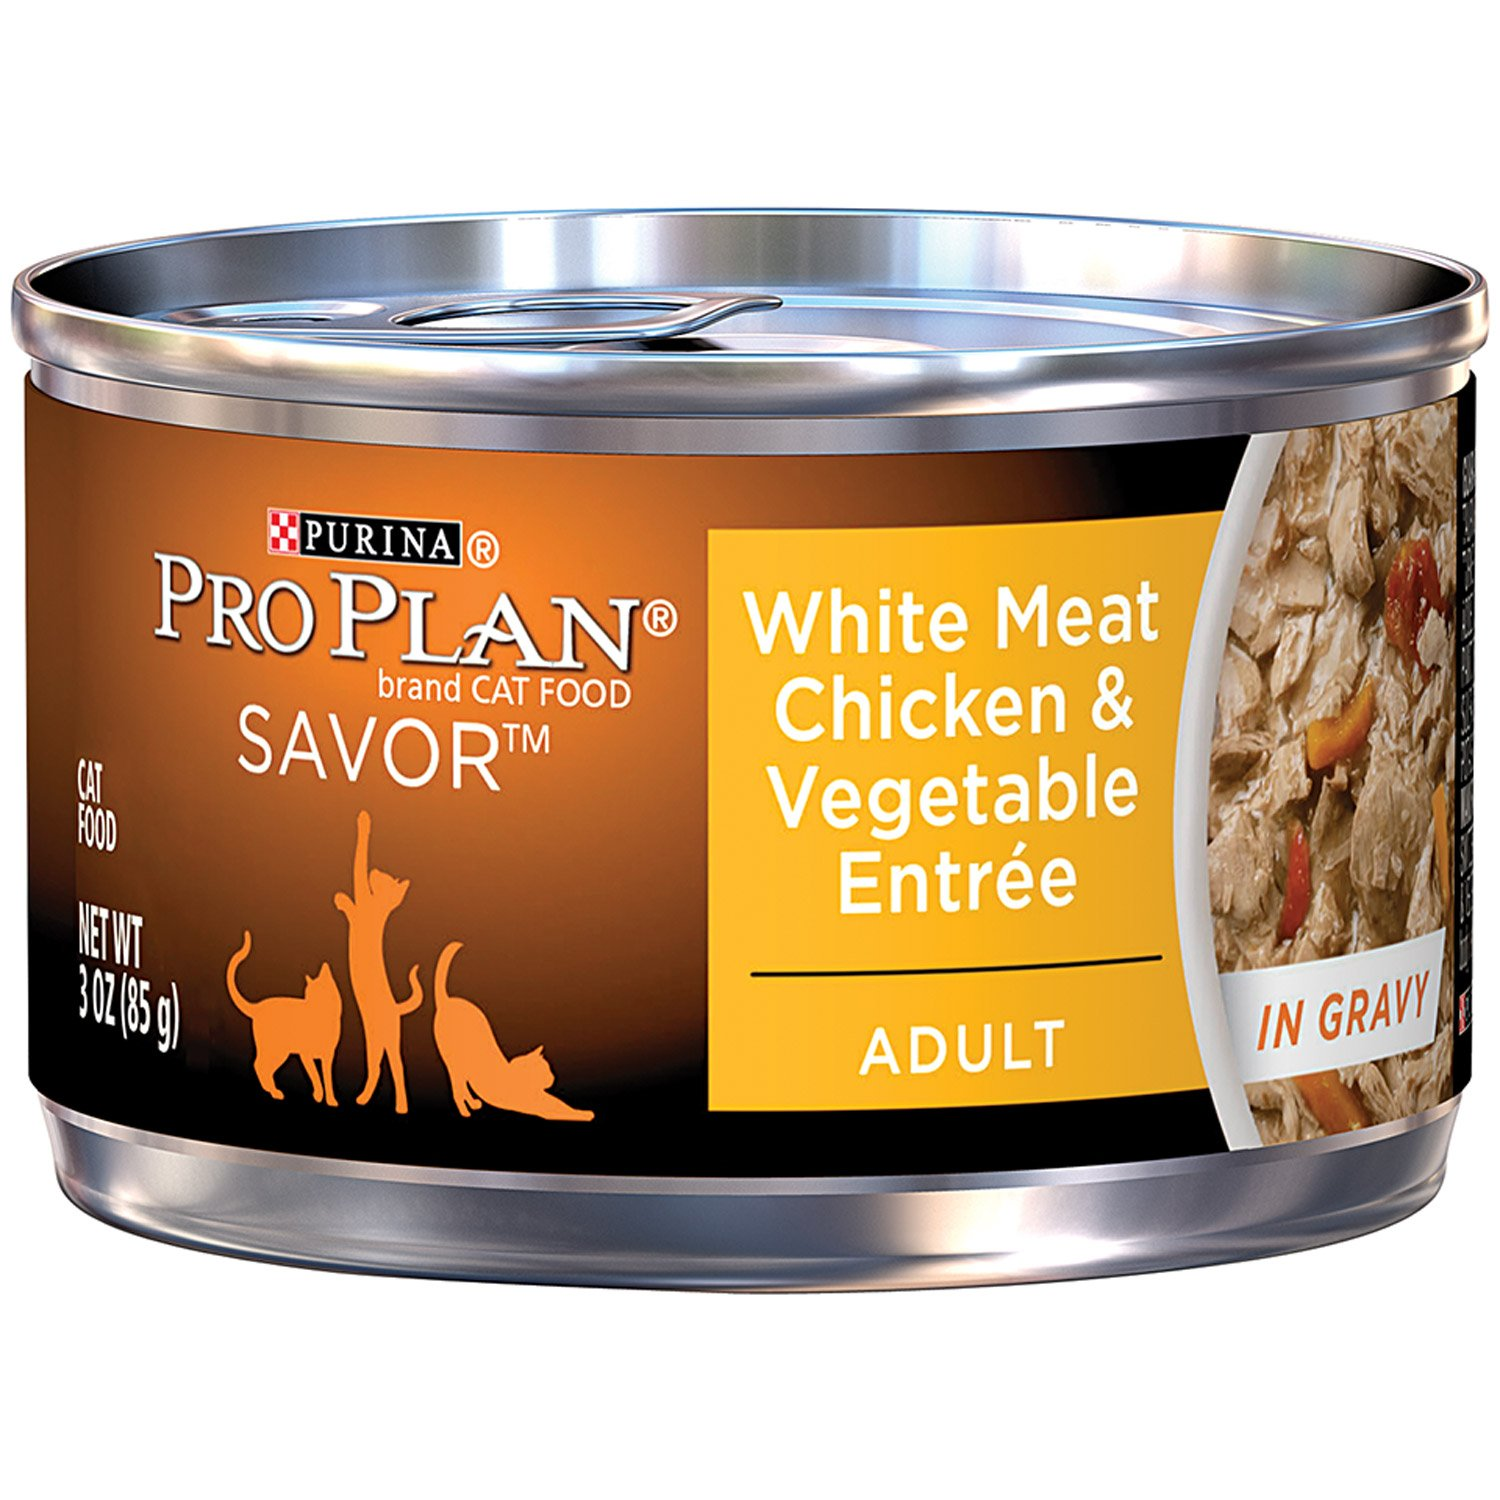 Pro Plan Savor White Meat Chicken & Vegetable Adult Canned Cat Food in Gravy